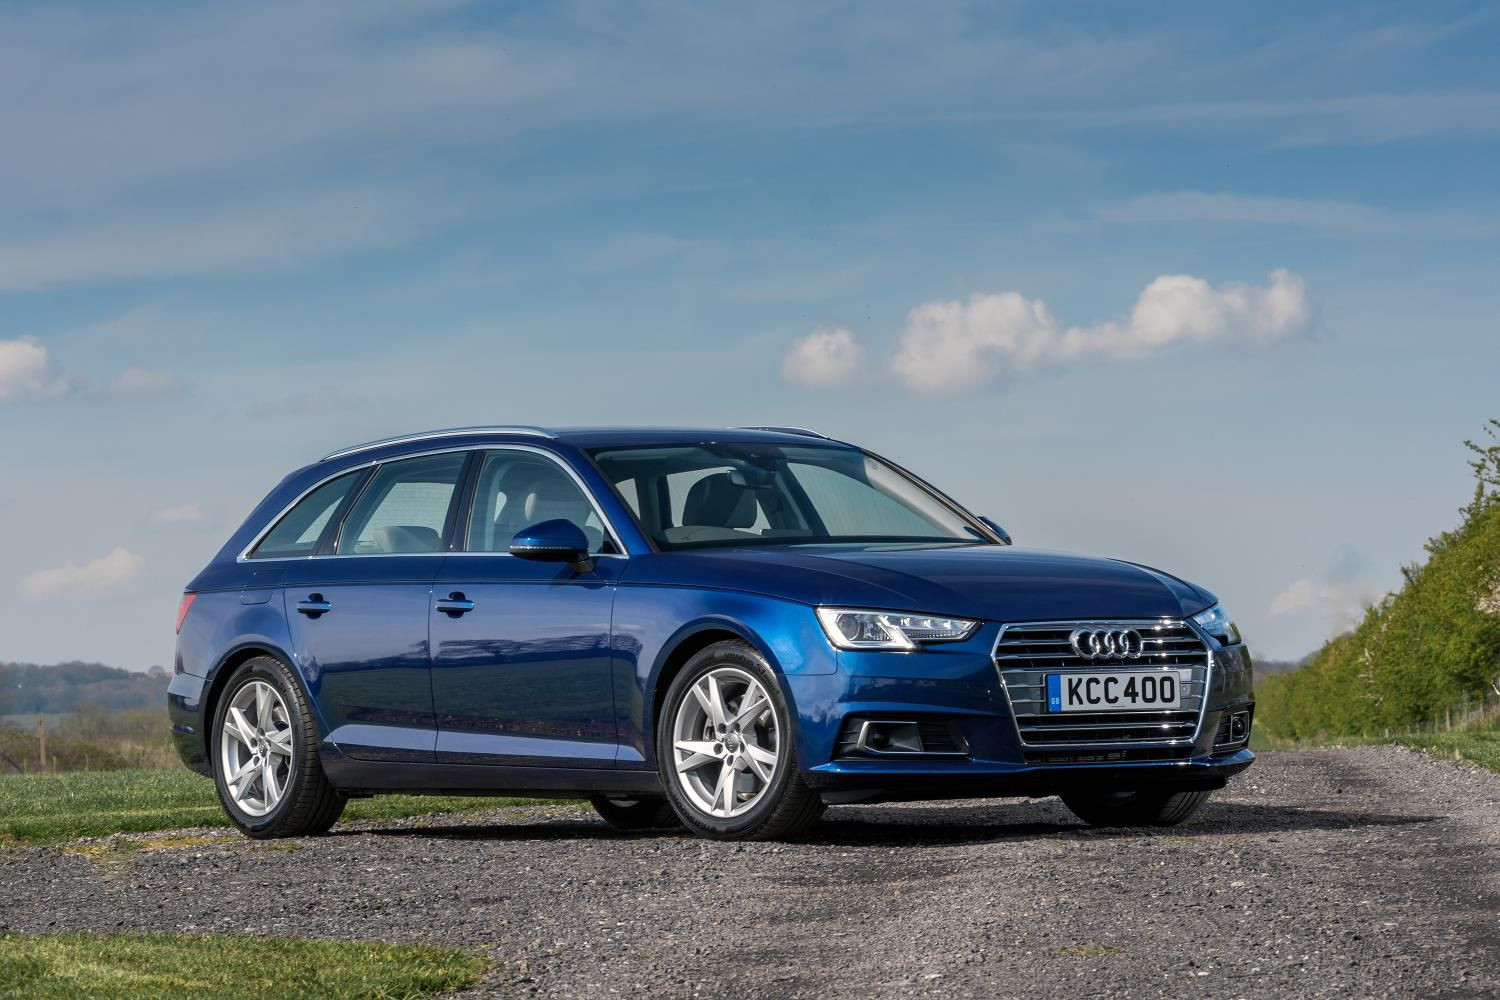 Bark metallic blue Audi A4 Avant parked two thirds side on